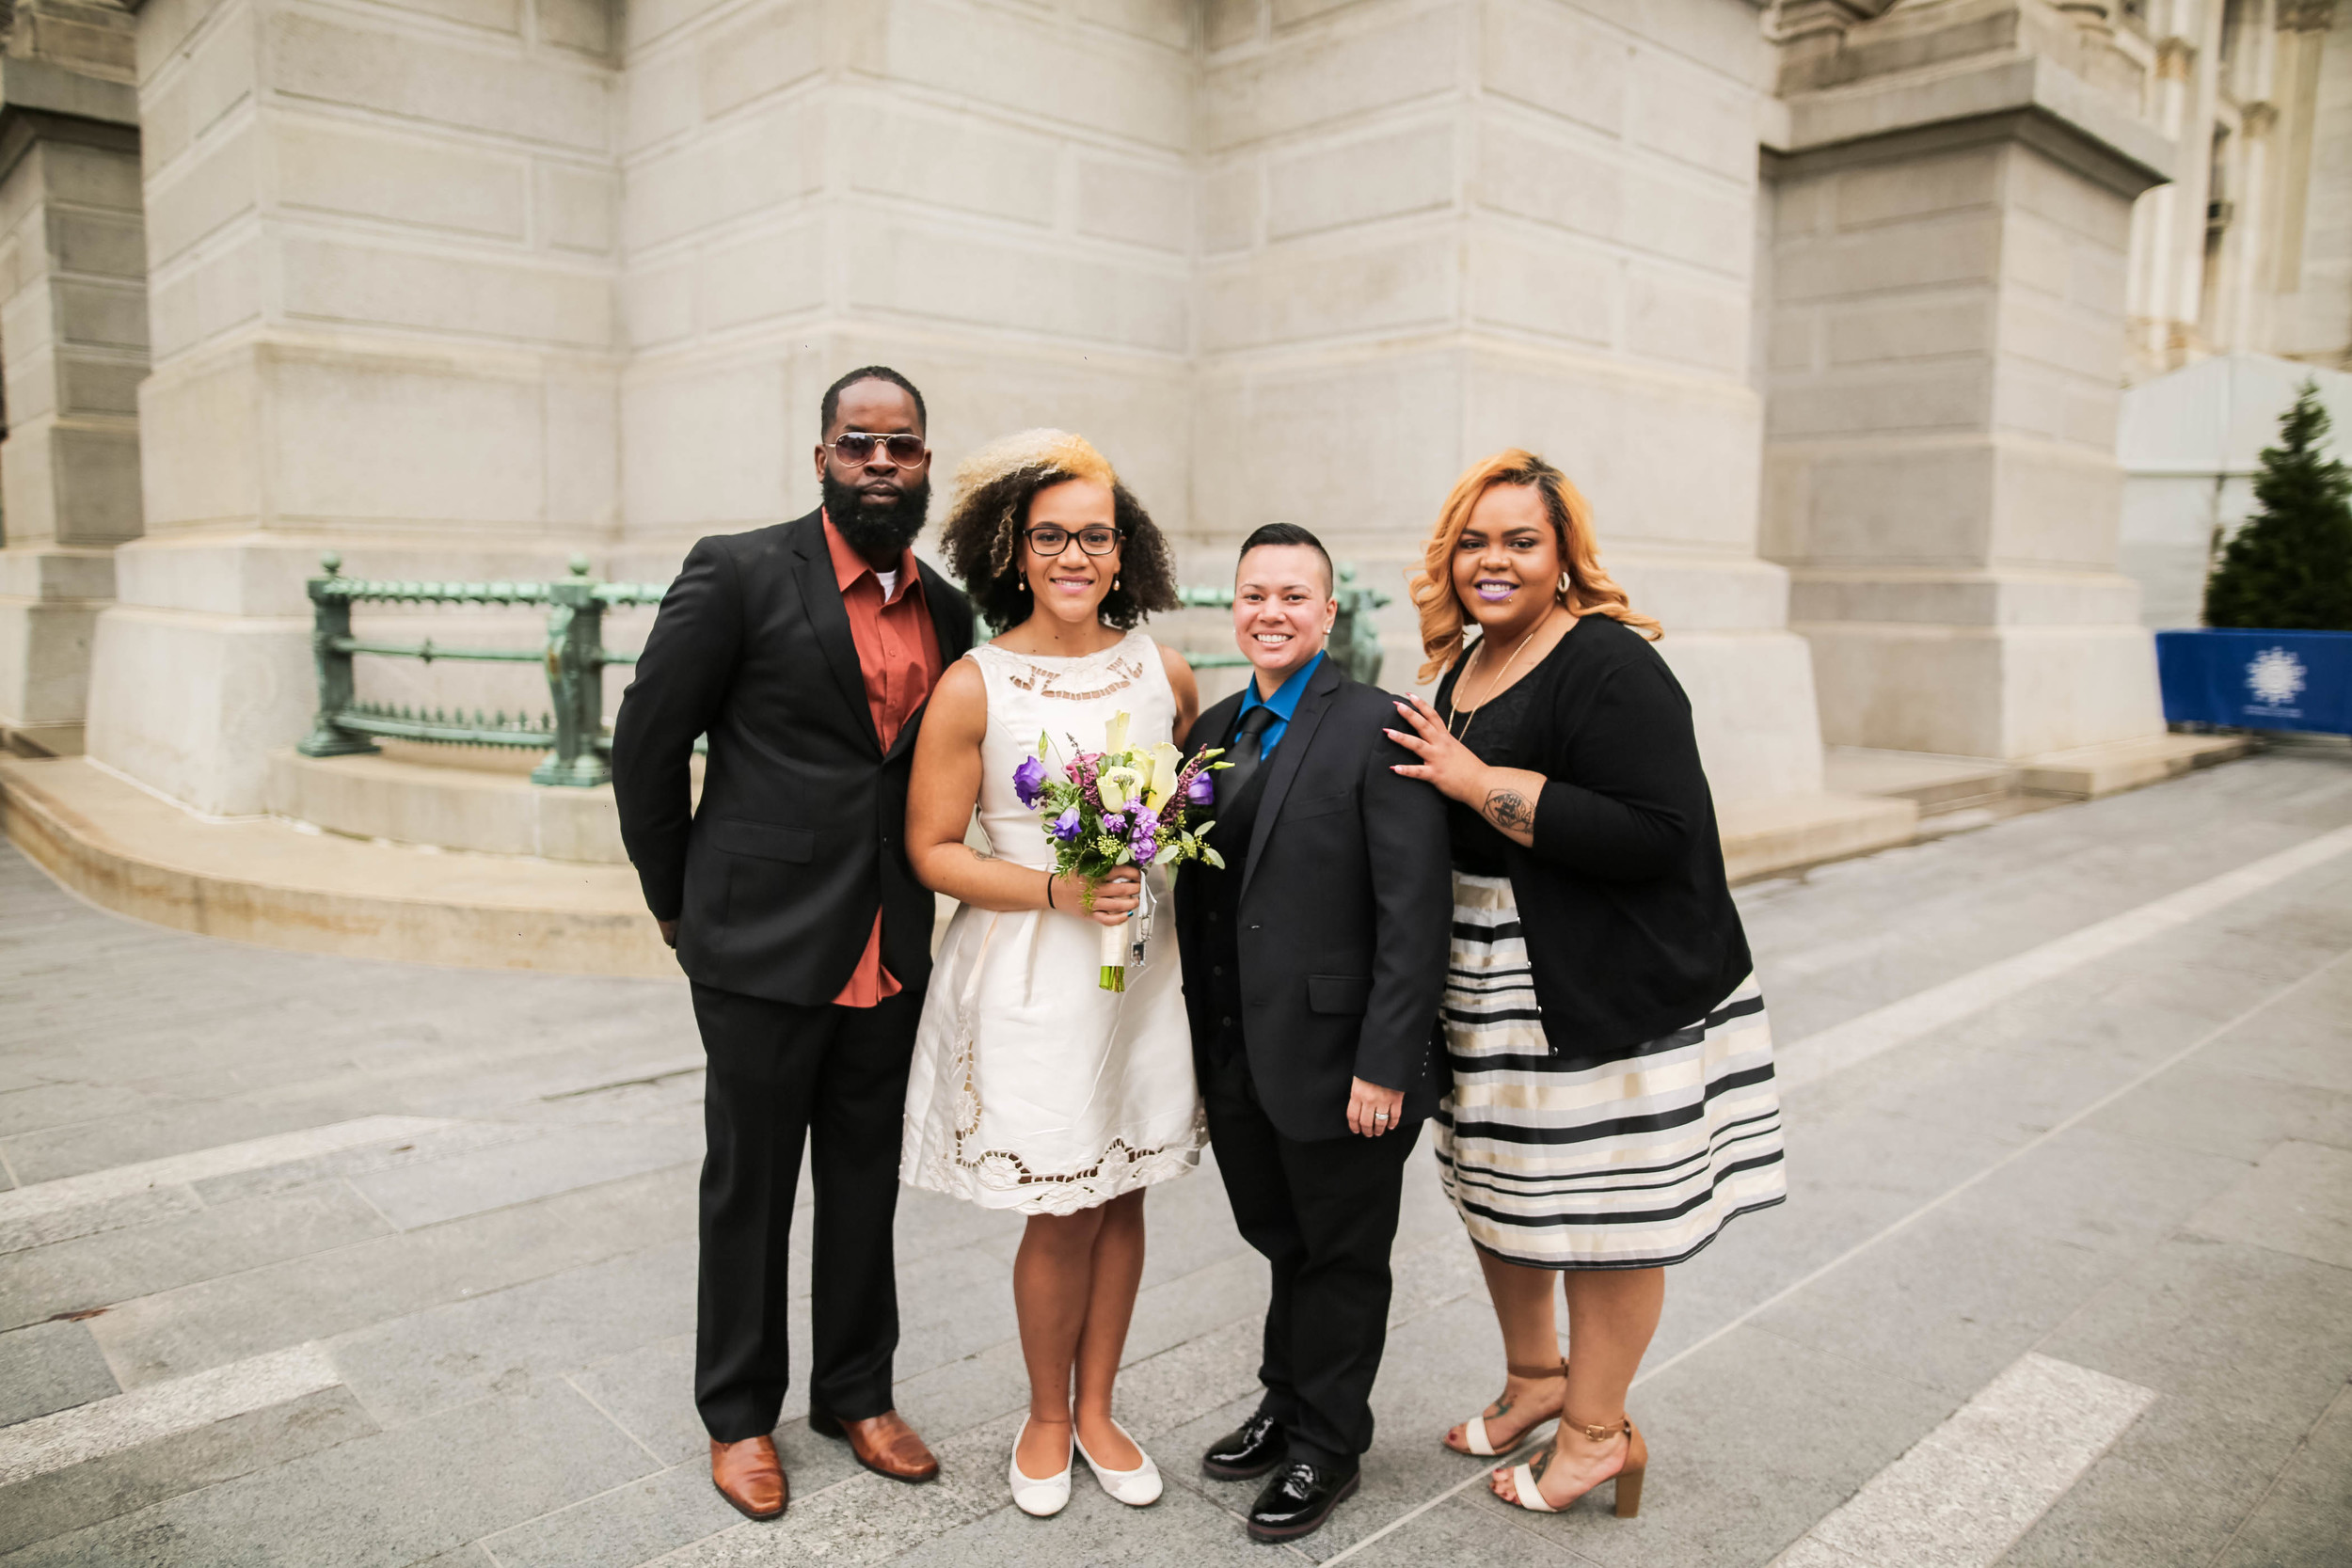 Sophia and Lisa - Philadelphia City Hall Lesbian Elopement by Swiger Photography, Philly's Lesbian Photographer